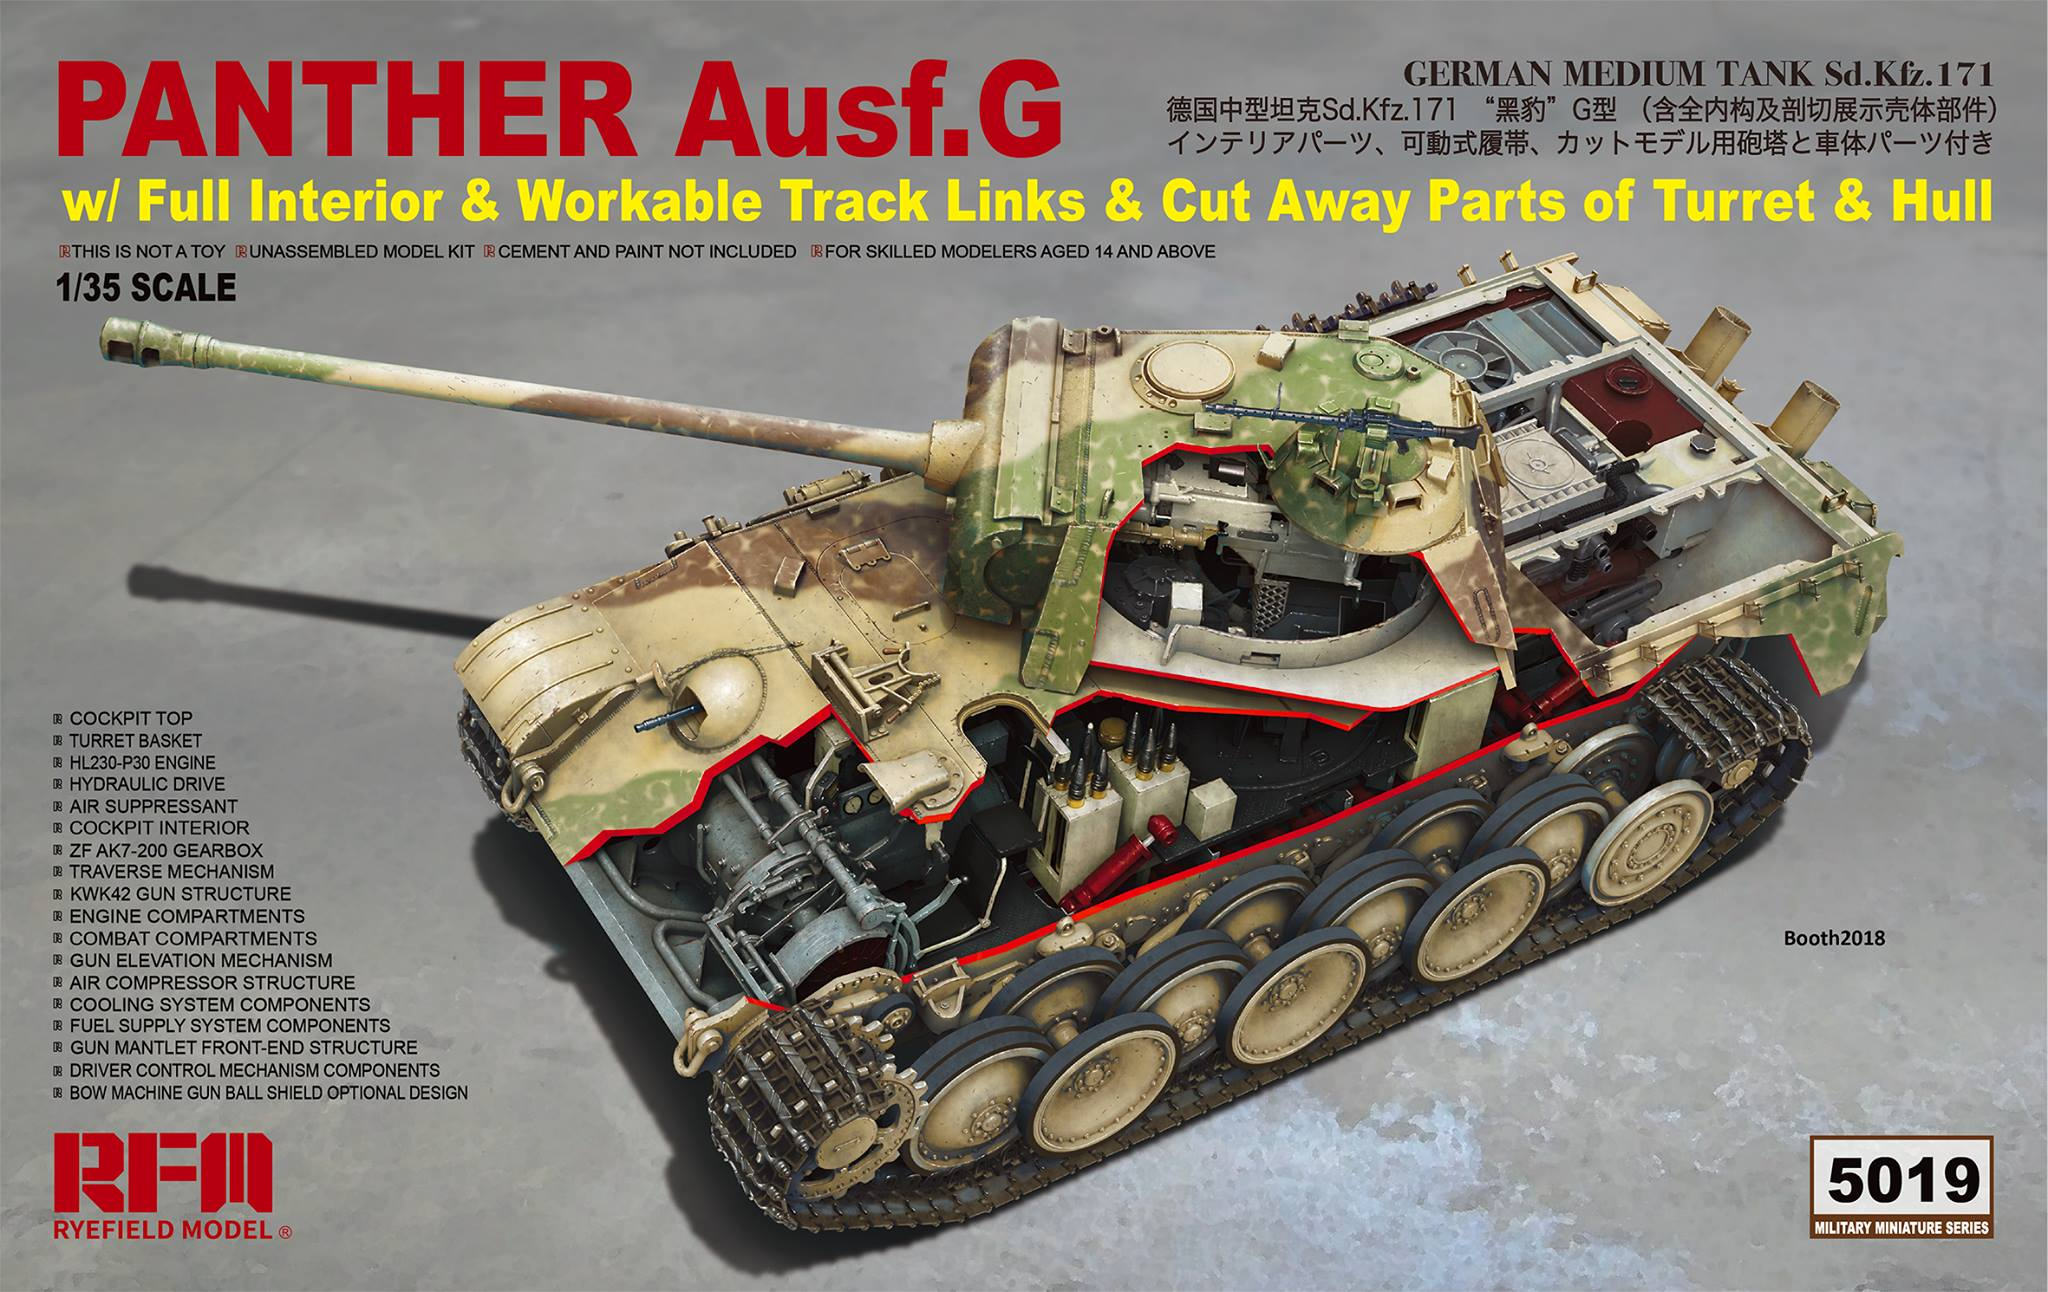 RM-5019 Panther Ausf.G with full interior & cut away parts & workable track links